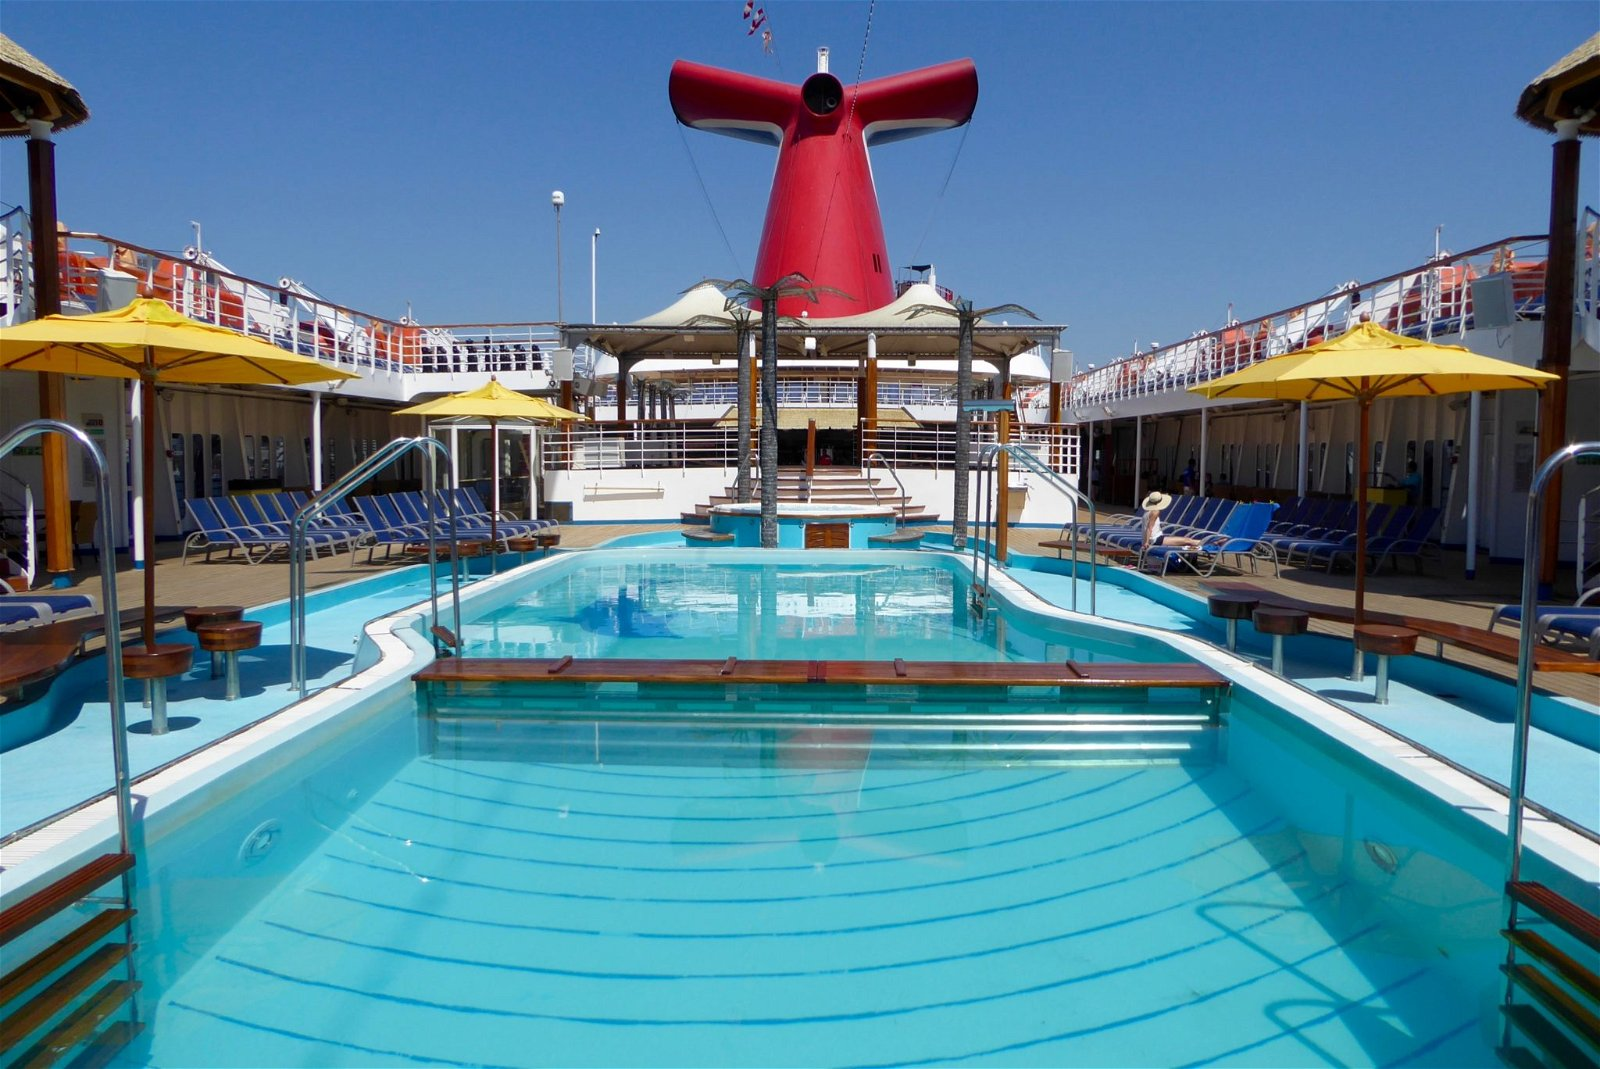 the lido pool on the carnival inspiration cruise ship